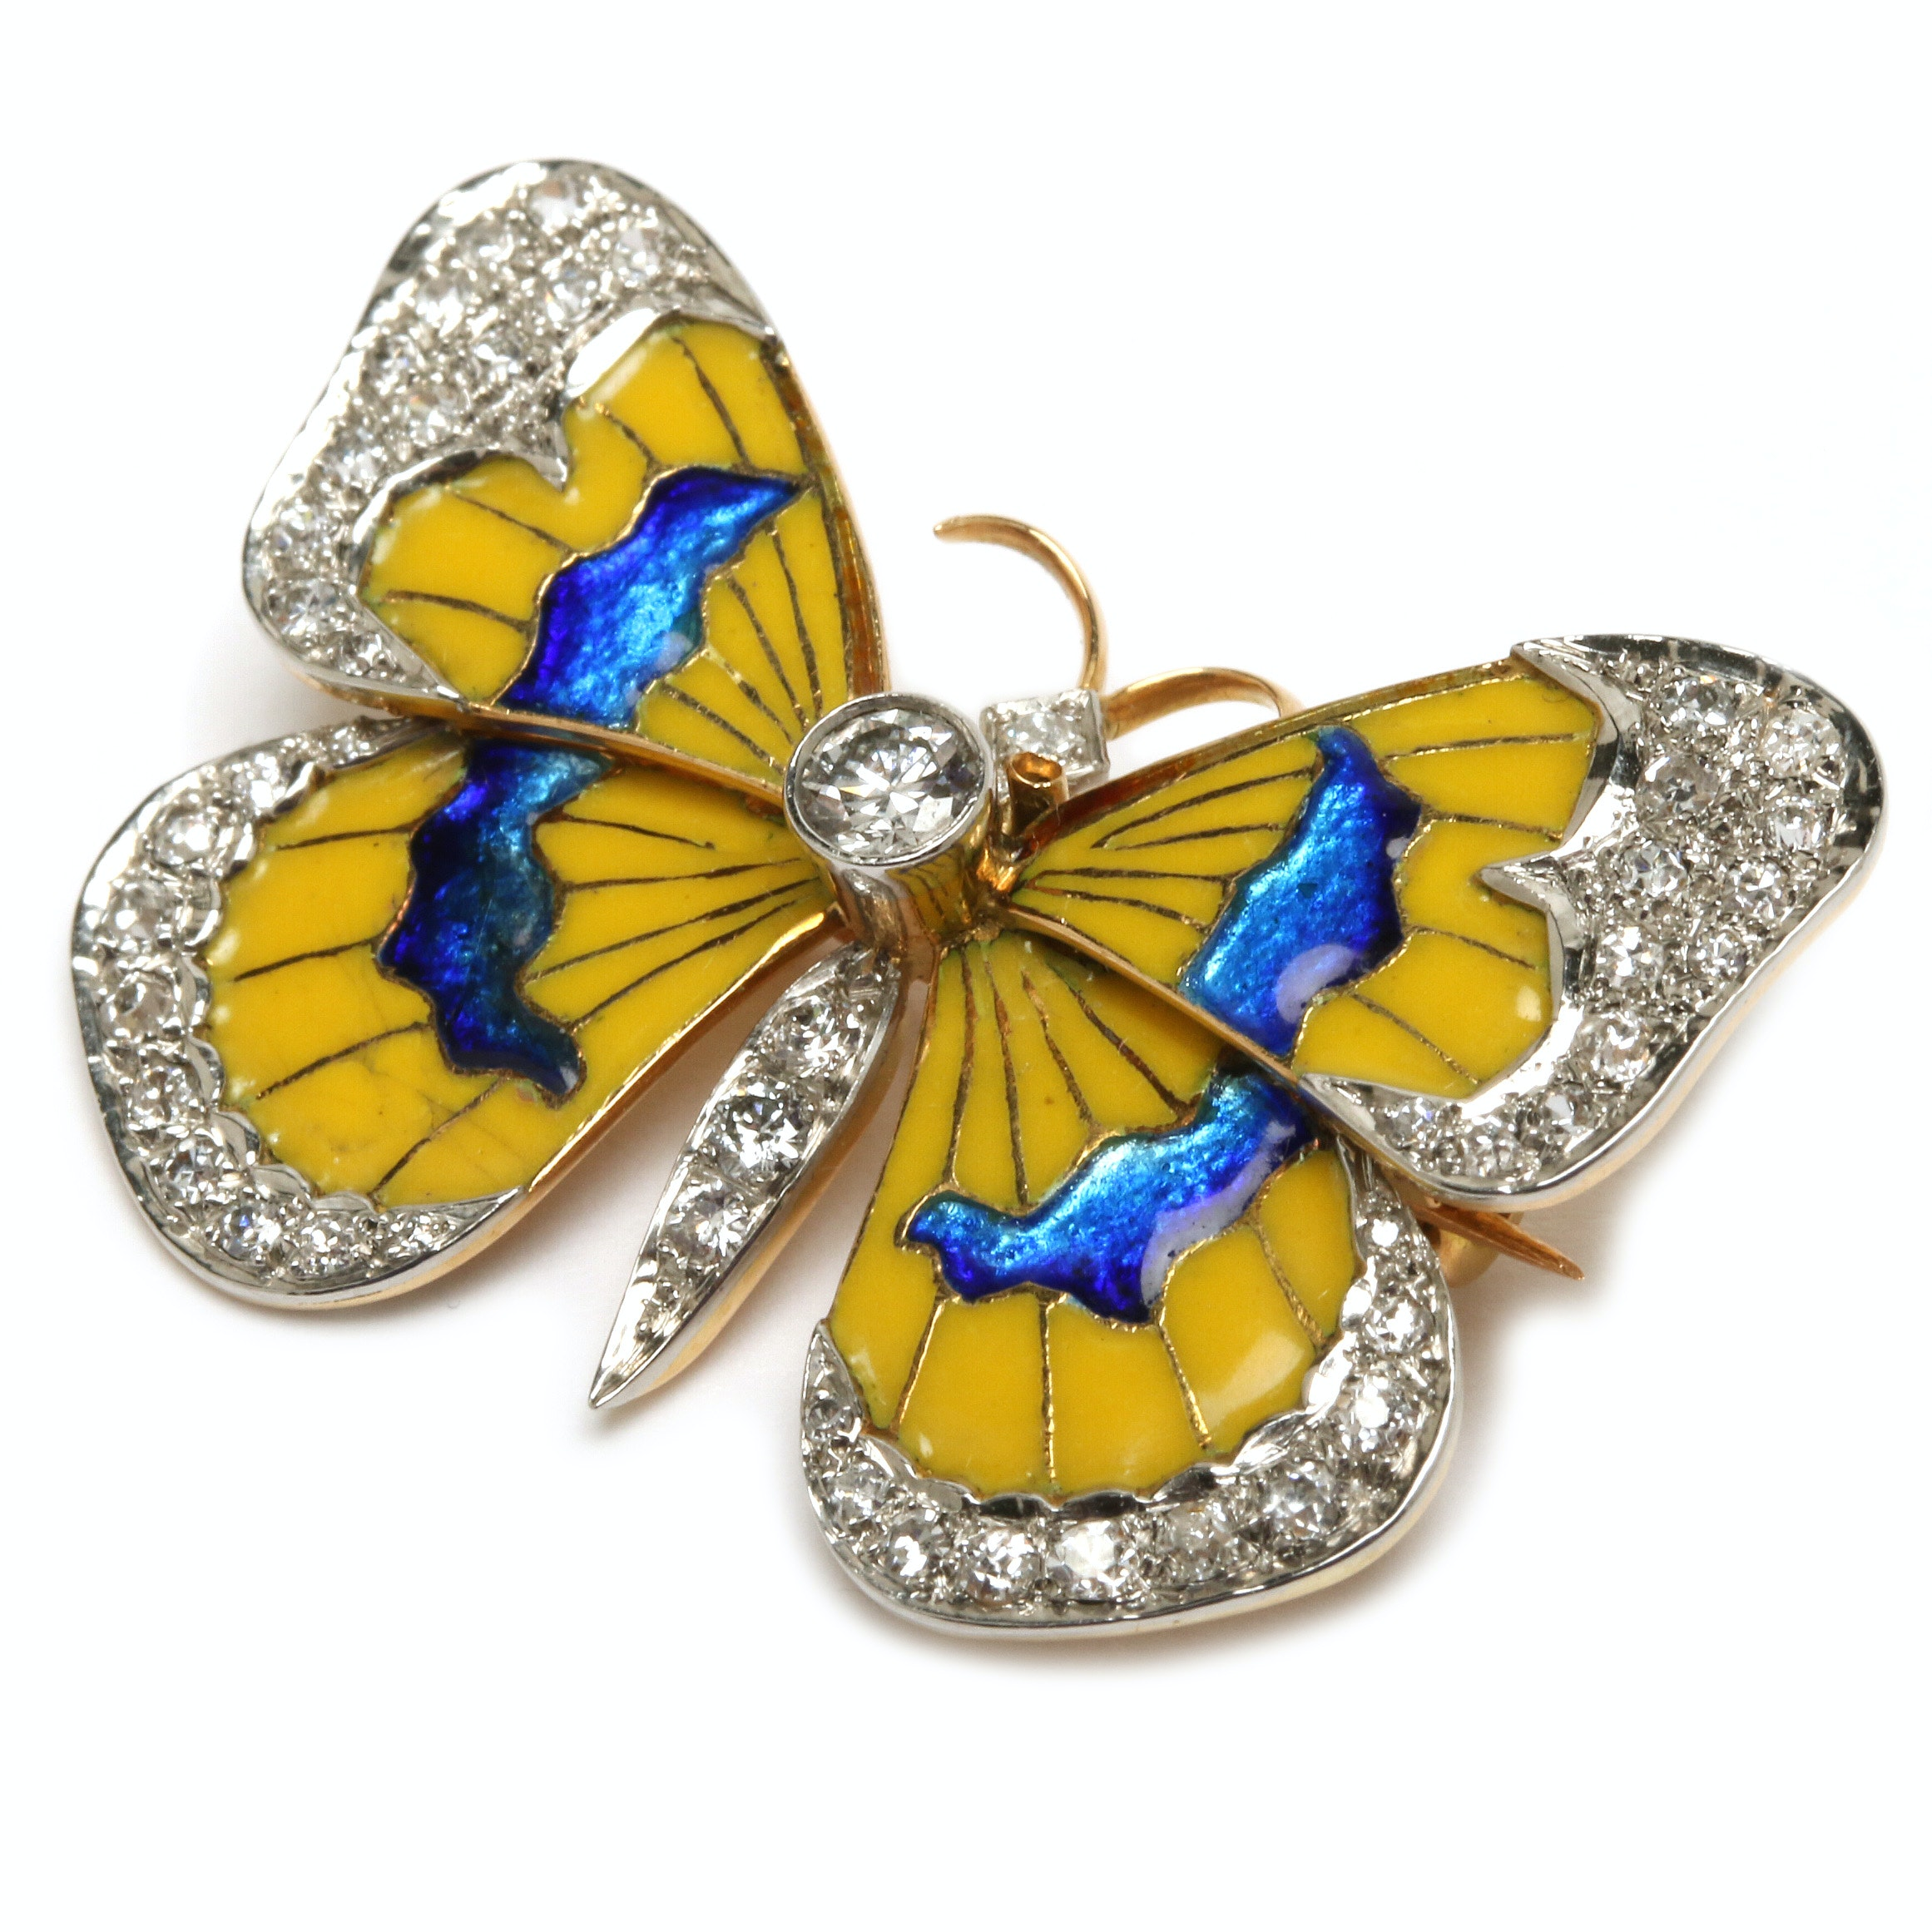 Van Cleef & Arpels 18K Yellow Gold Diamond and Enamel Butterfly Pin